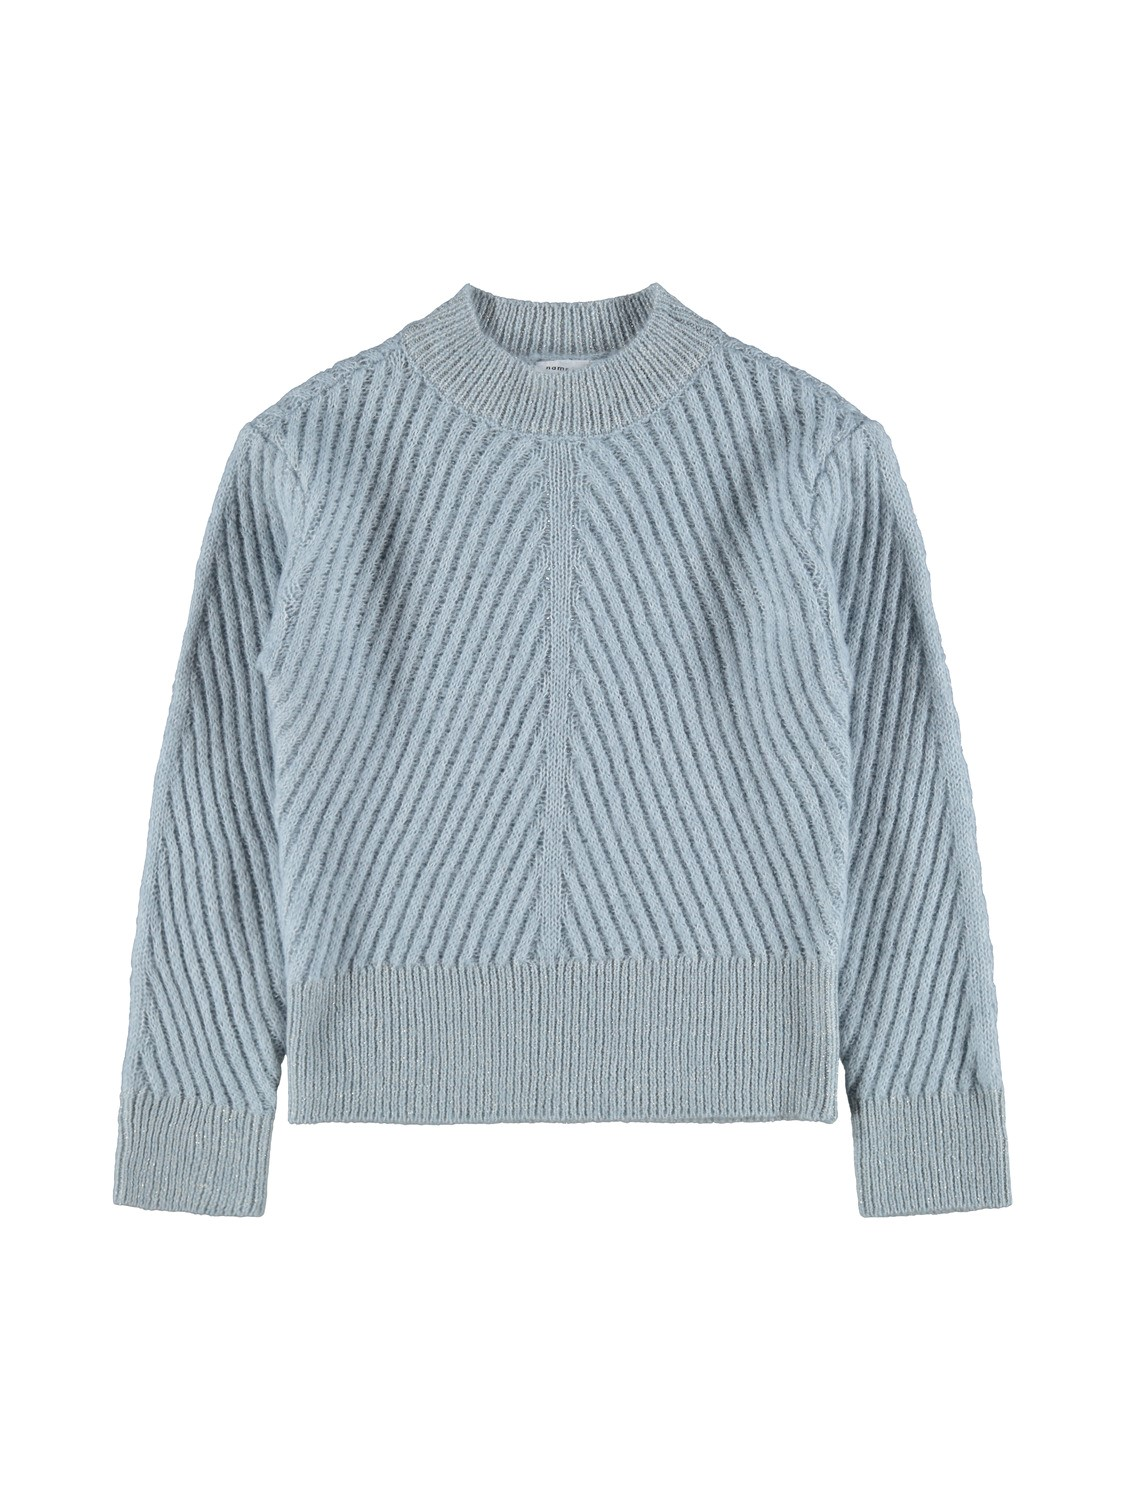 Tuttie Knit - Dusty blue